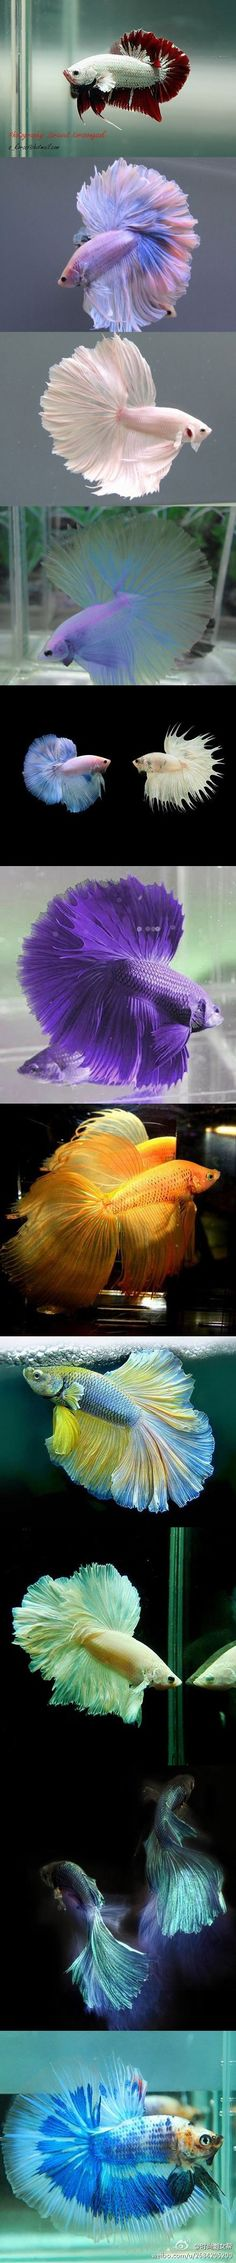 Some interesting betta fish facts. Betta fish are small fresh water fish that are part of the Osphronemidae family. Betta fish come in about 65 species too! Colorful Fish, Tropical Fish, Beautiful Creatures, Animals Beautiful, Siamese Fighting Fish, Water Animals, Underwater Life, Beautiful Fish, Sea World